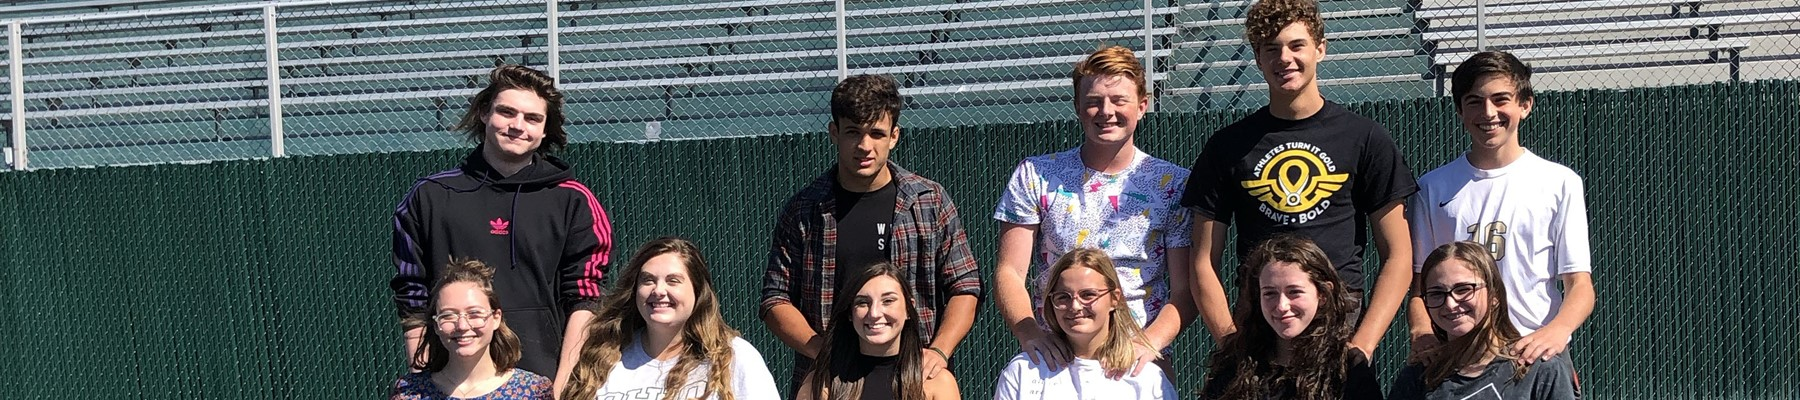 AHS 2019 Homecoming Court